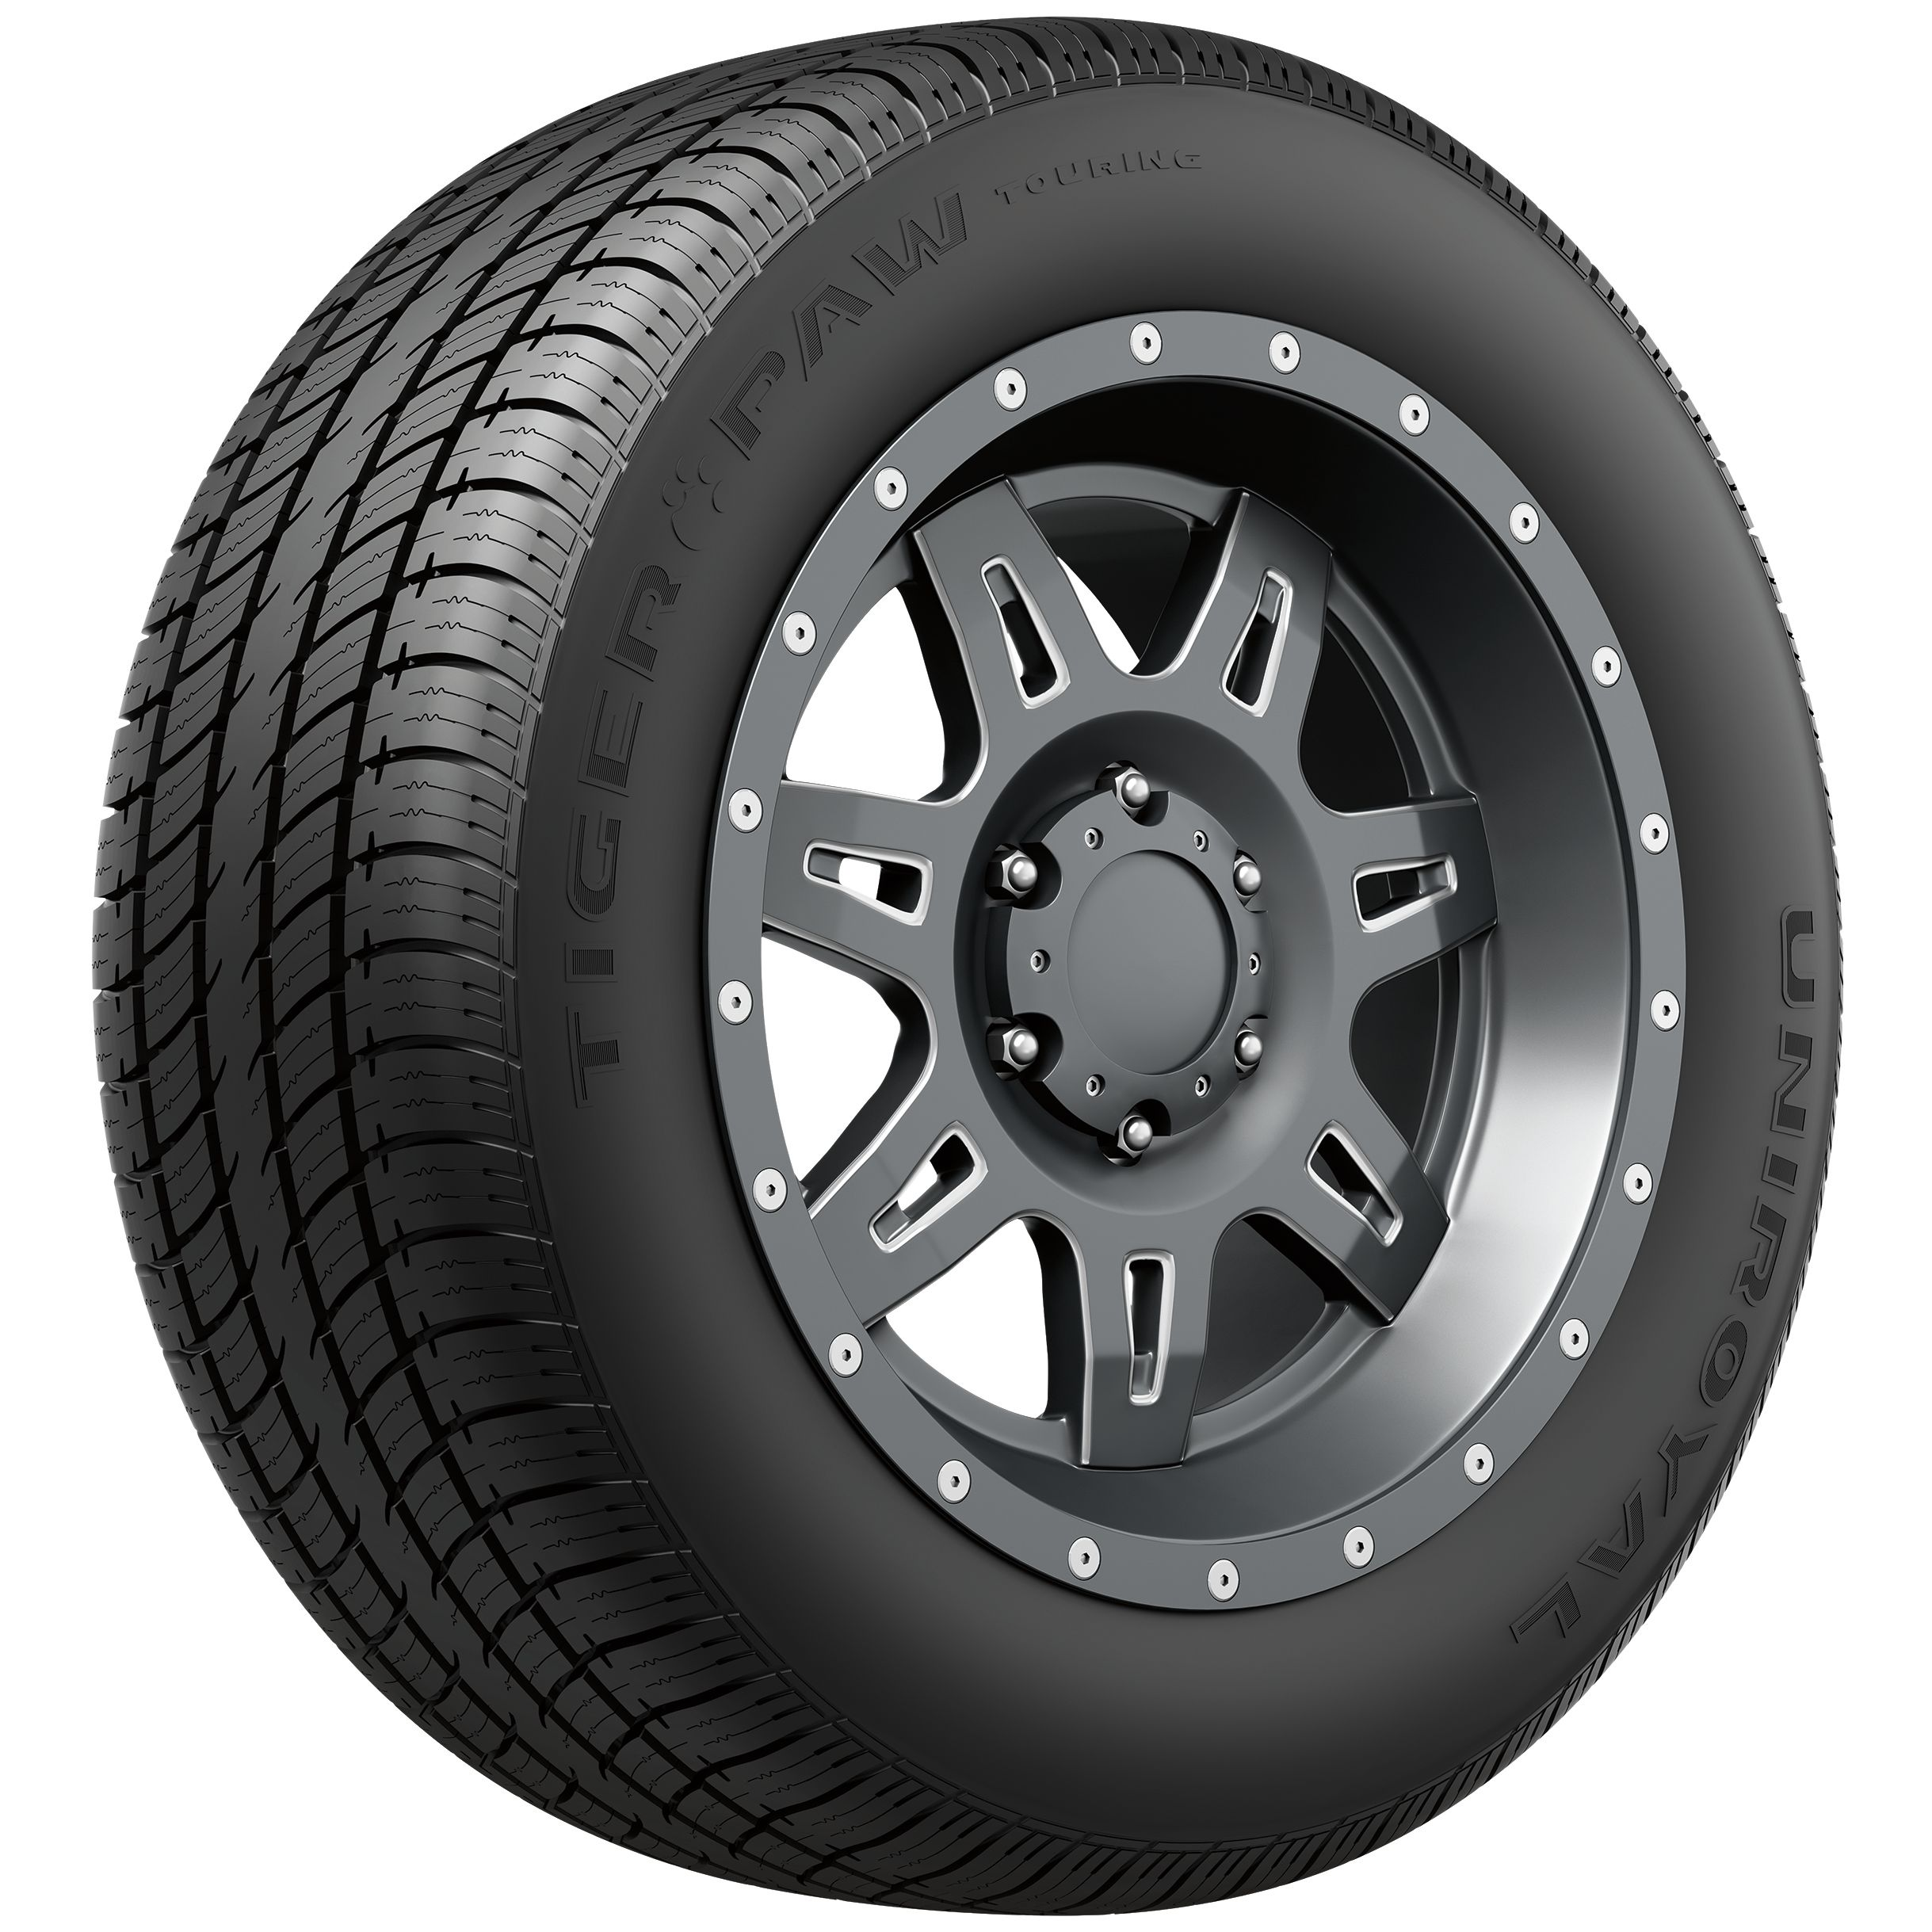 Uniroyal Tiger Paw Touring P215/70R16 99T